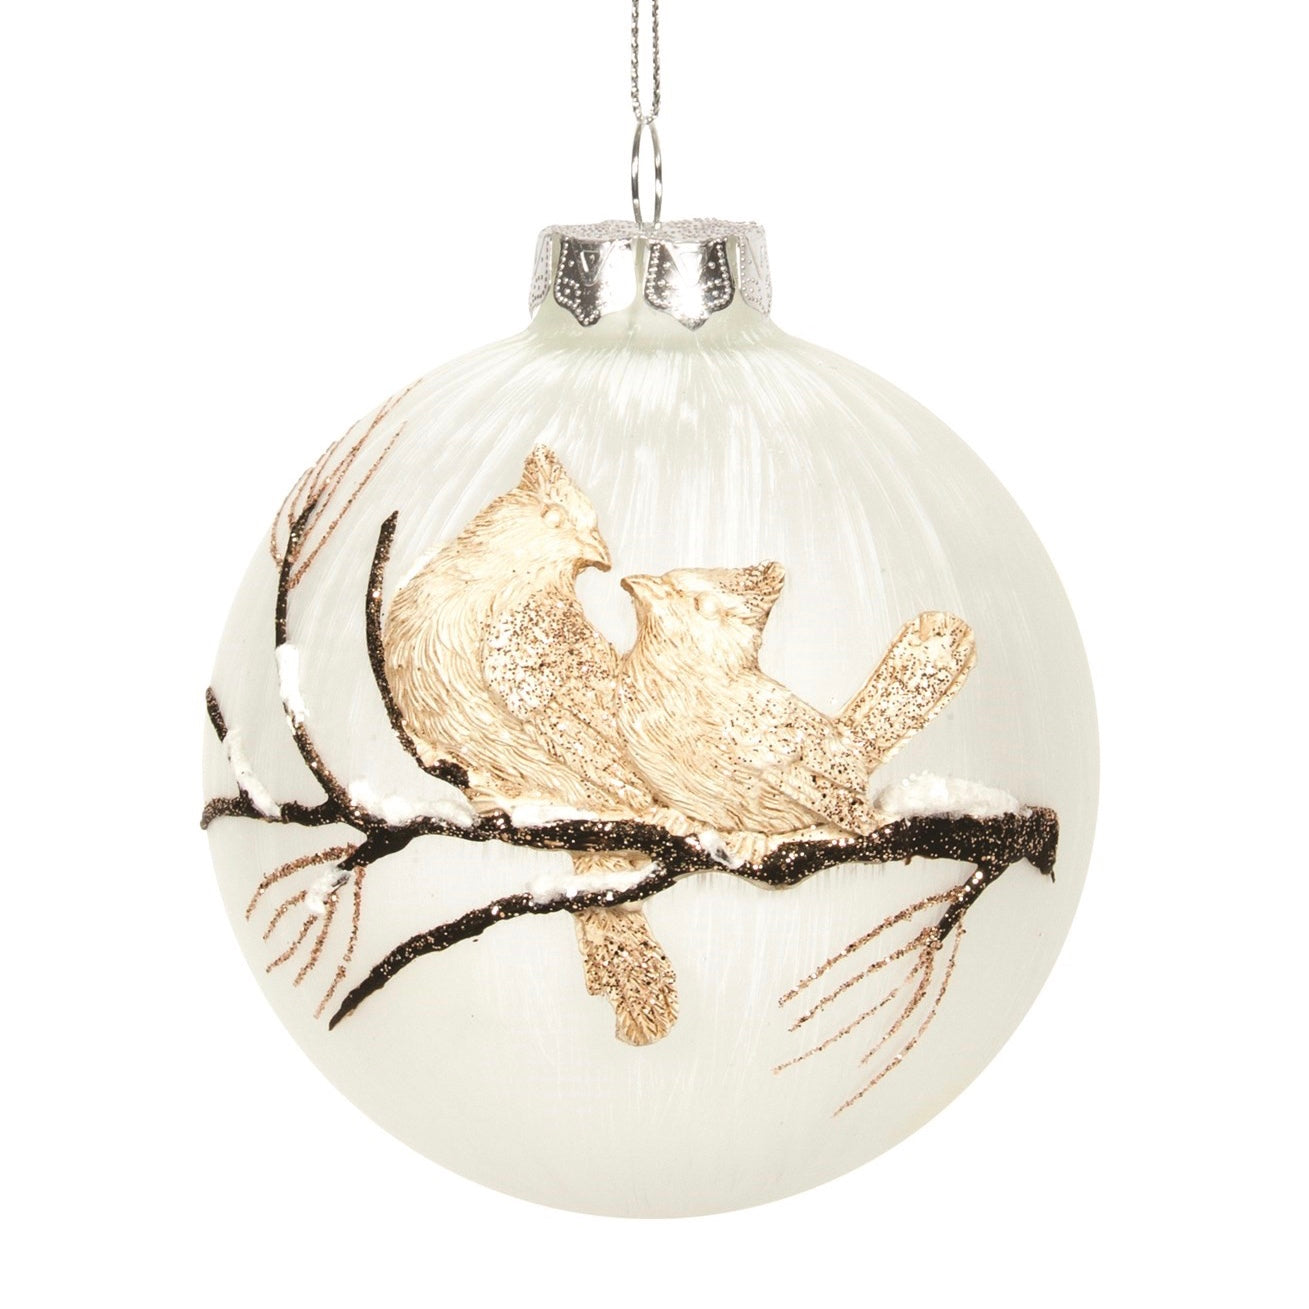 Off White Frosted with Tan Bird Glass Ball Ornament | Putti Christmas Decorations